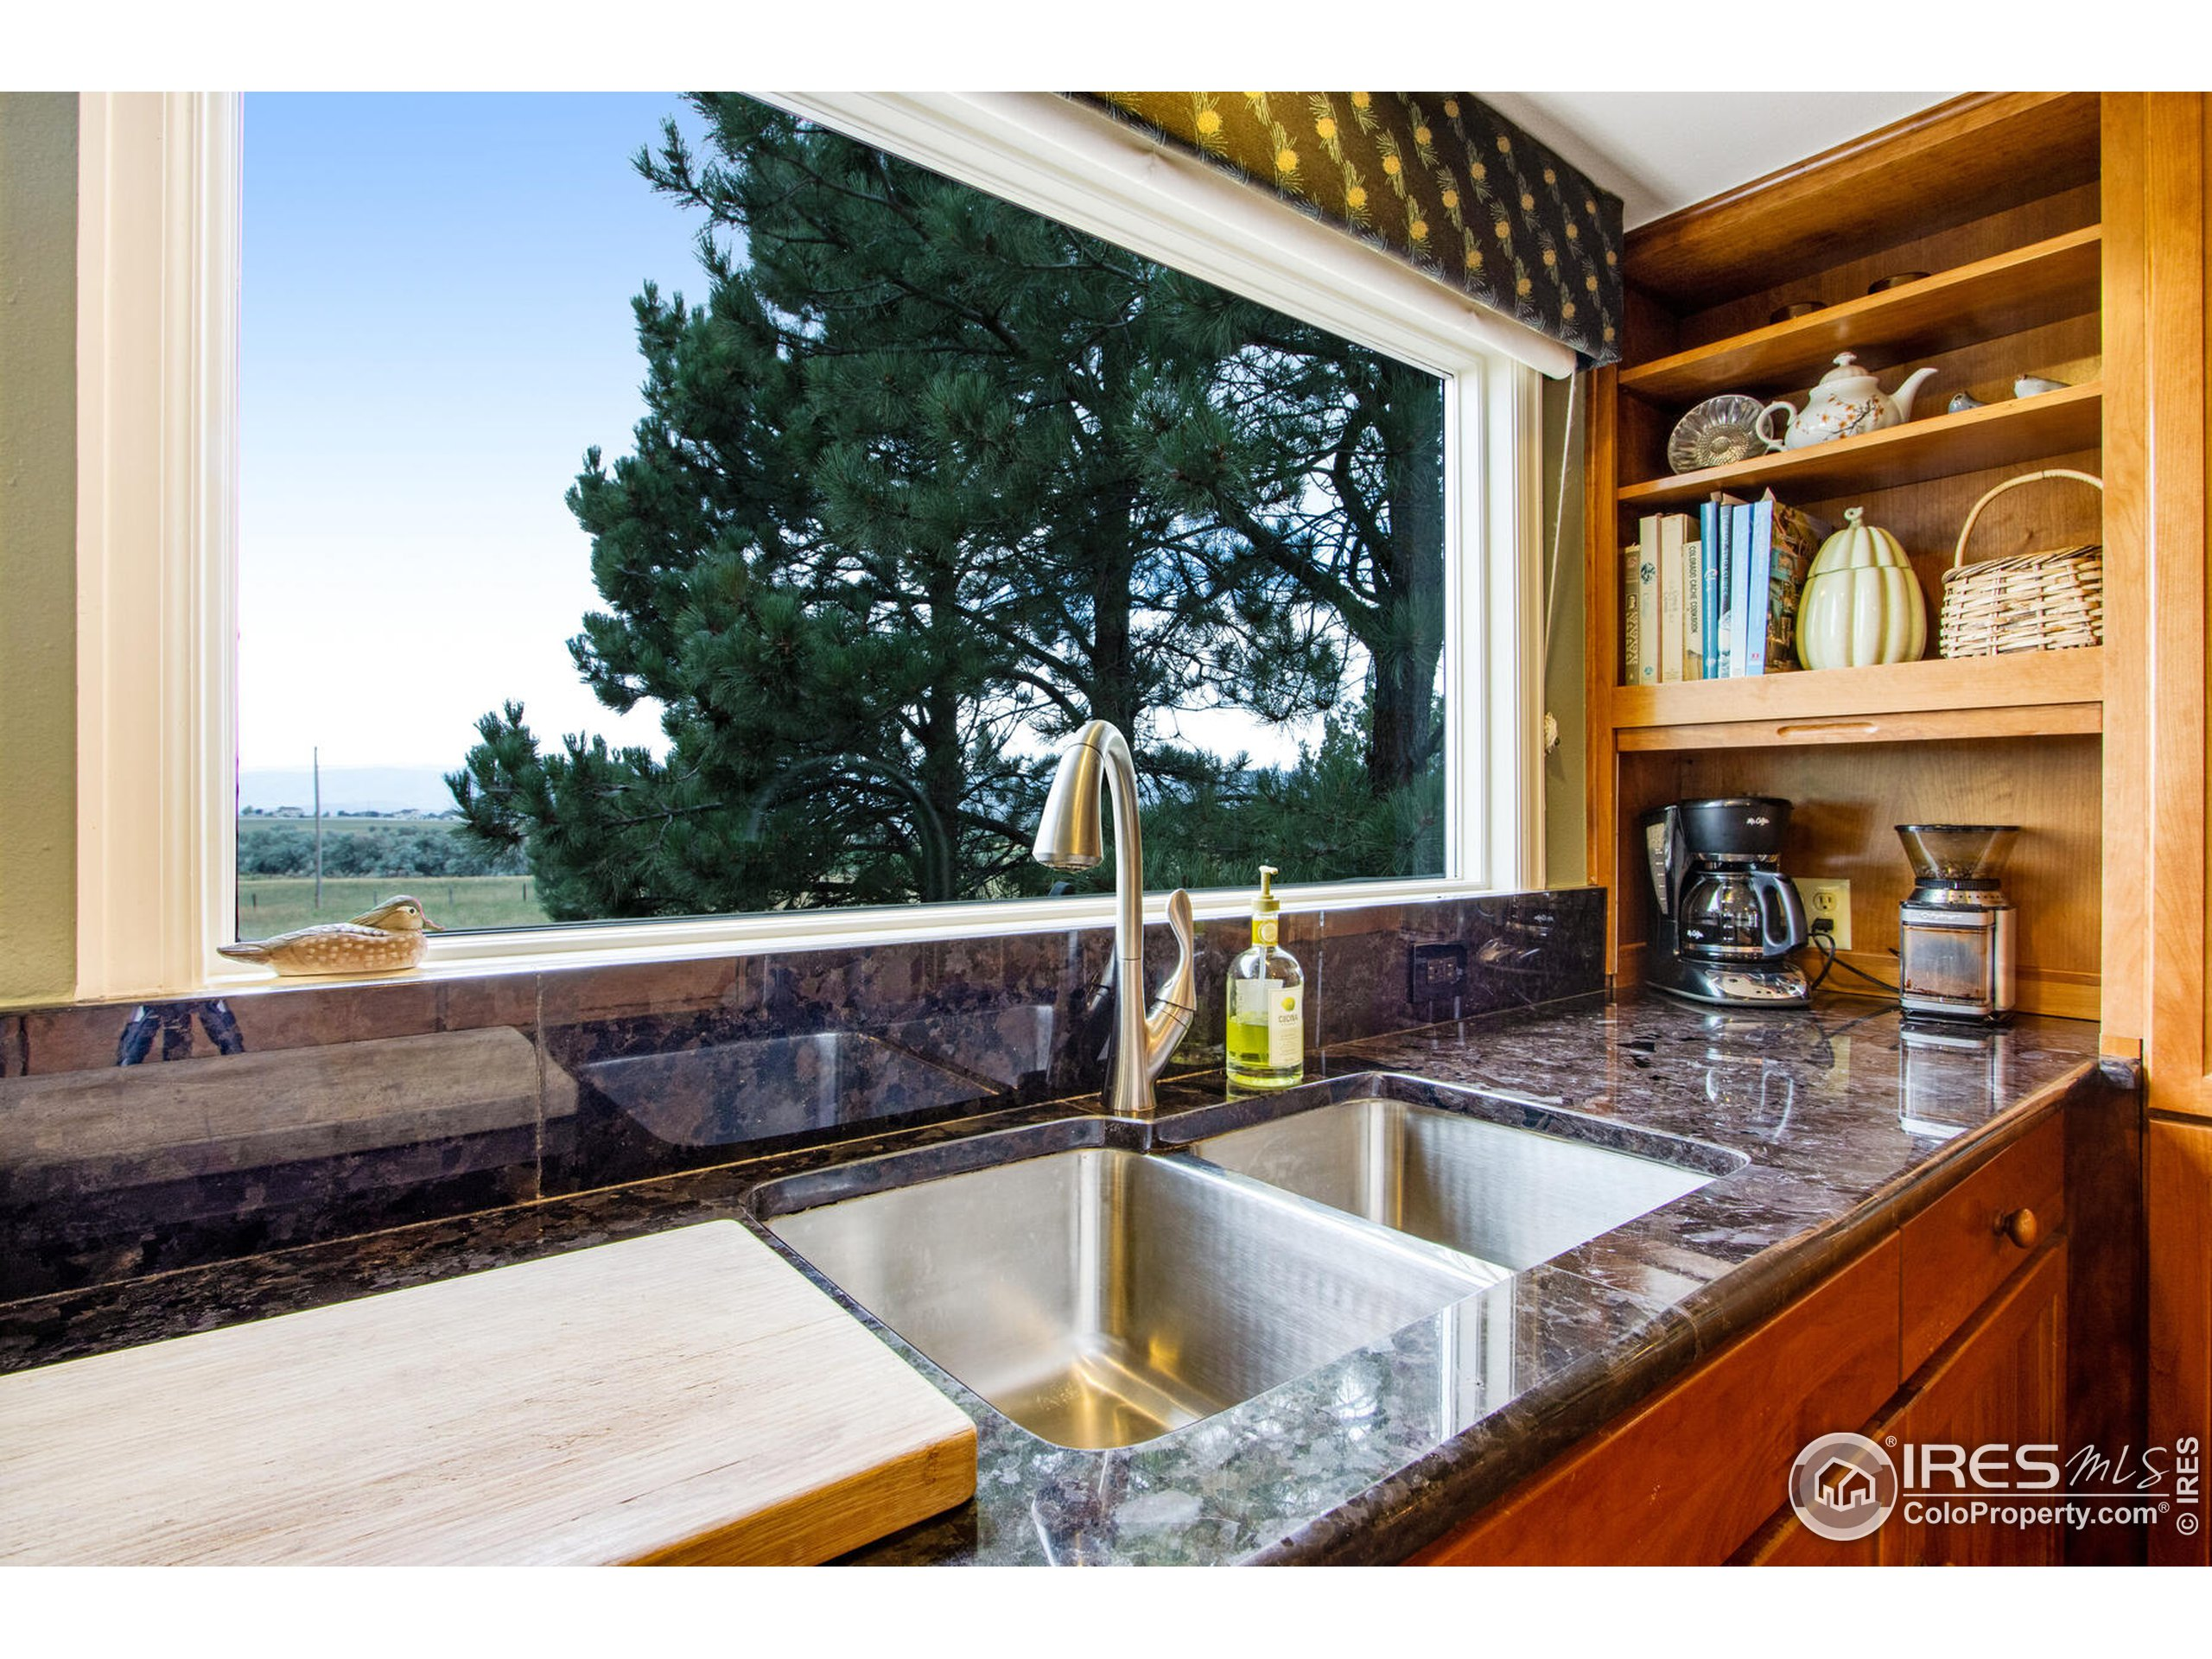 See for miles - Gorgeous views even from the kitchen sink!  High-end slab granite. Solid cherry cabinetry, fully remodeled to perfection.